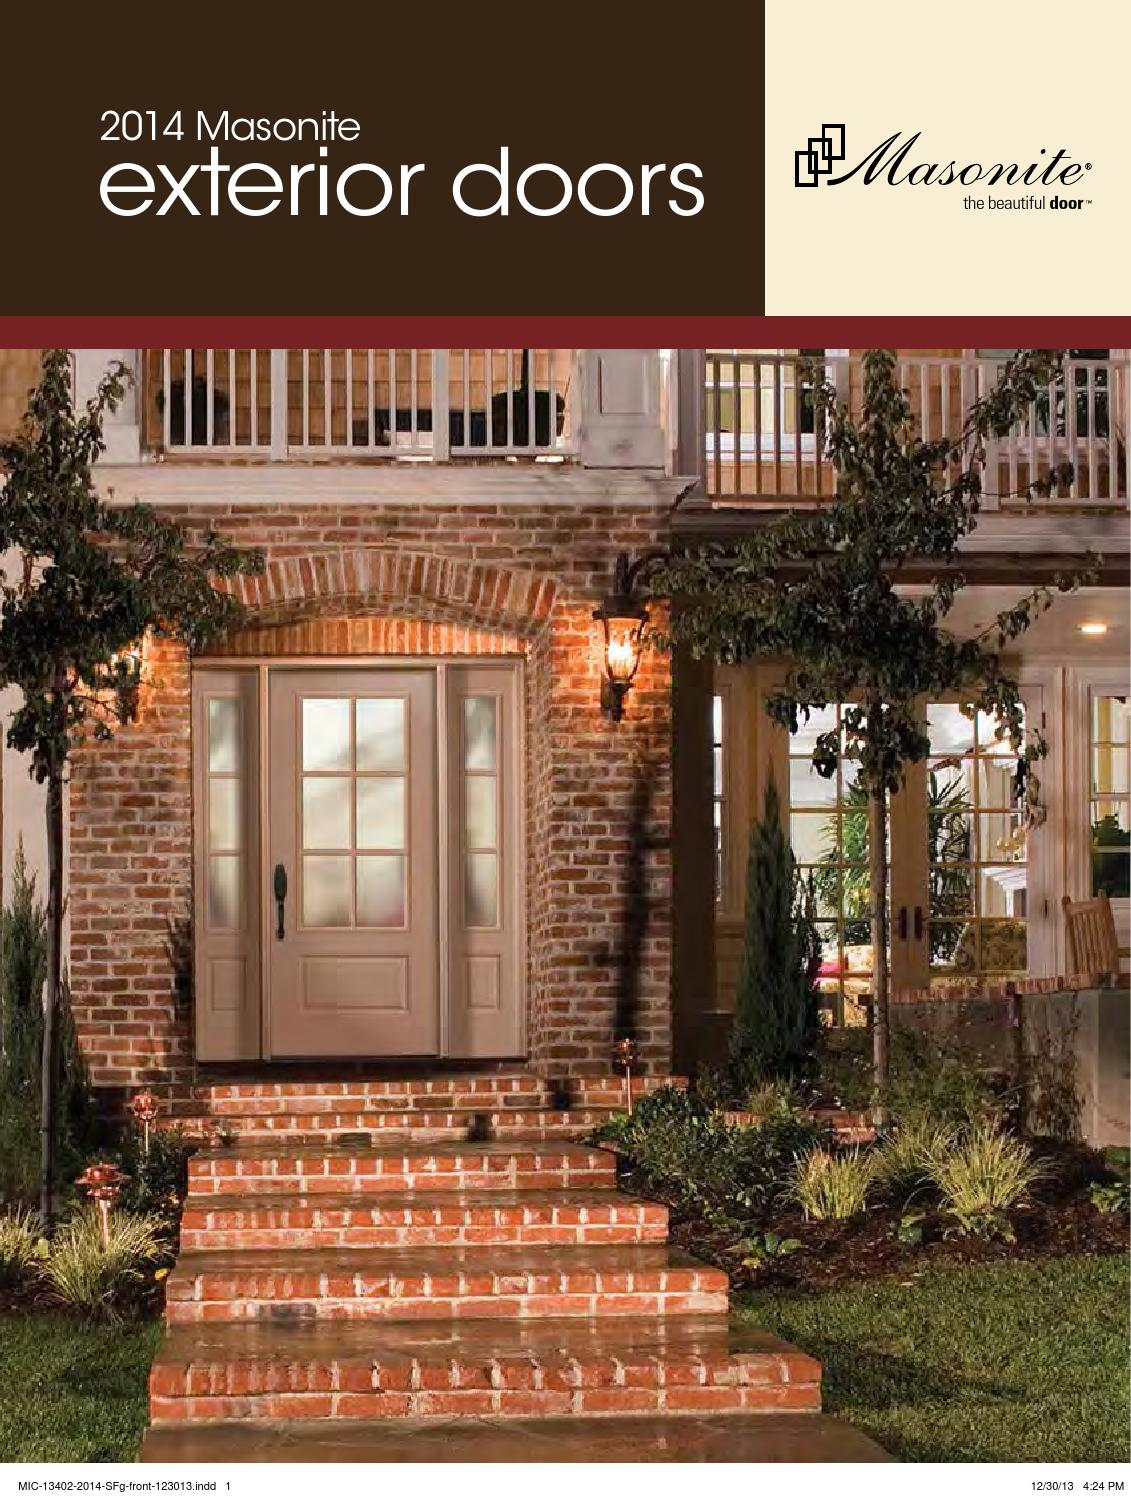 1496 #A74924 2014 Masonite Exterior Door Catalog By Meek Lumber Company Issuu wallpaper Masonite Fiberglass Exterior Doors 43651131